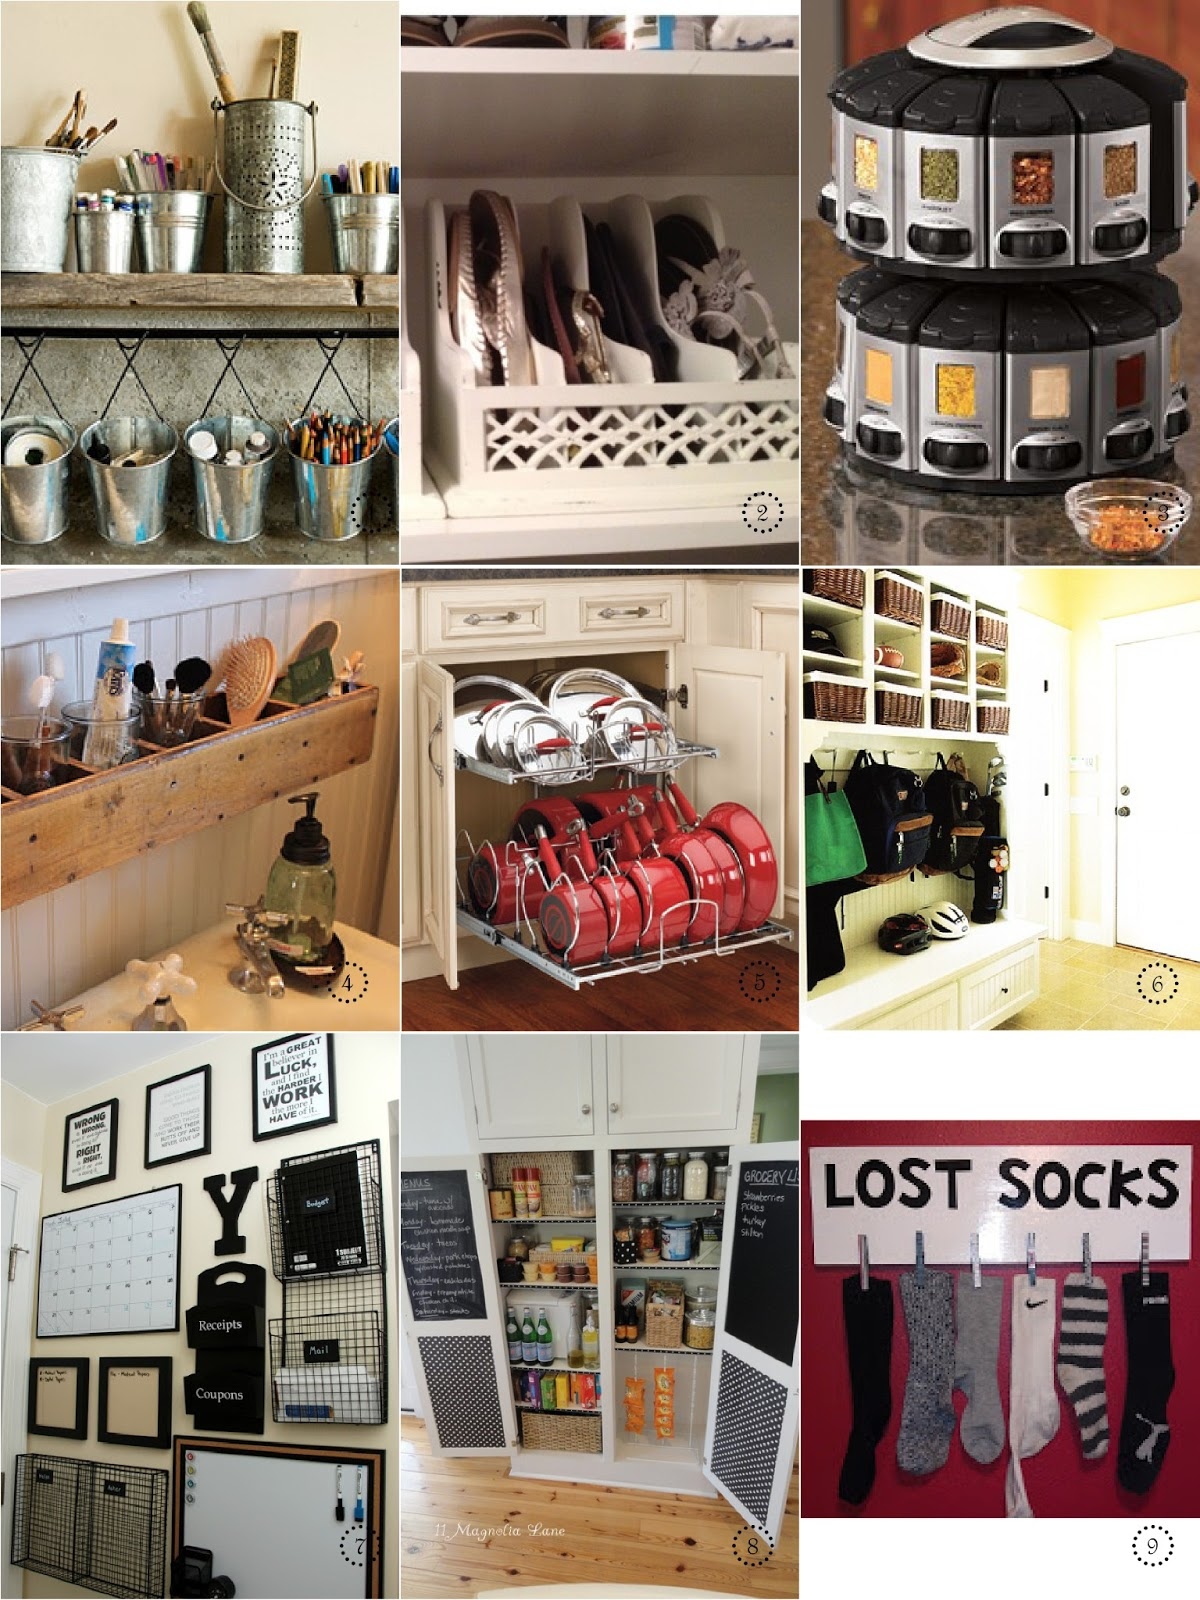 house cleaning house cleaning office organization ideas tips cheap kitchen organization ideas favorite organized space collab